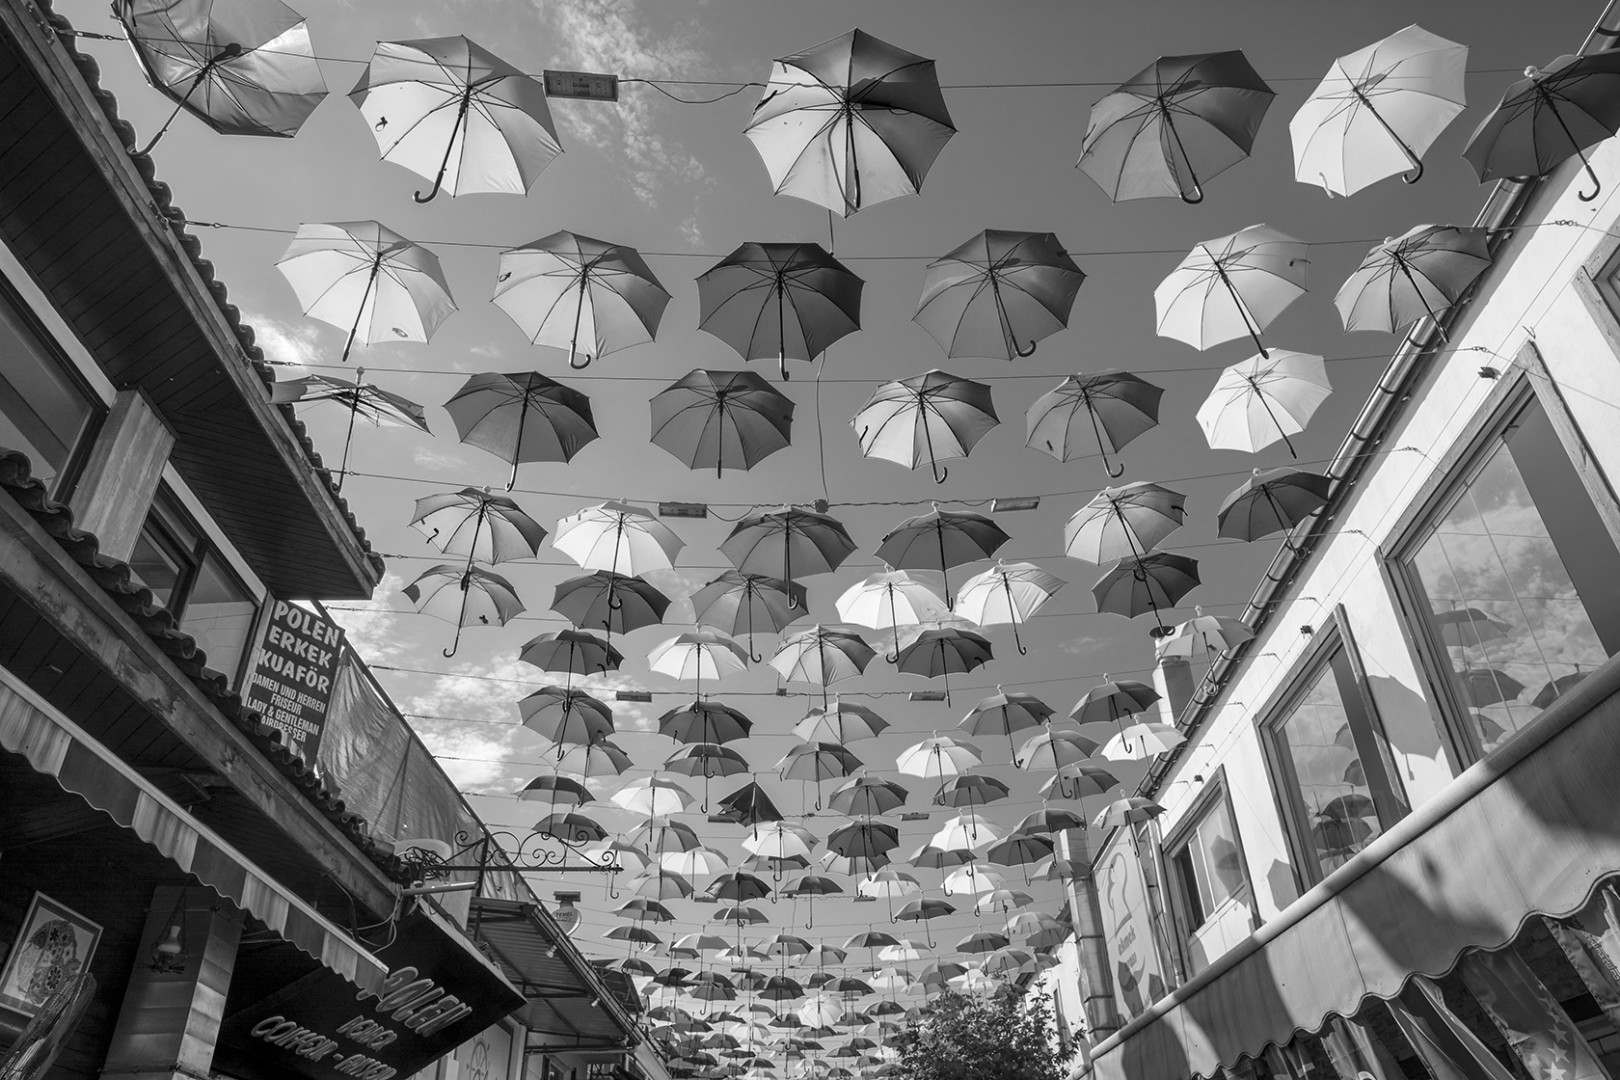 Umbrellas strung over a street in Antalya